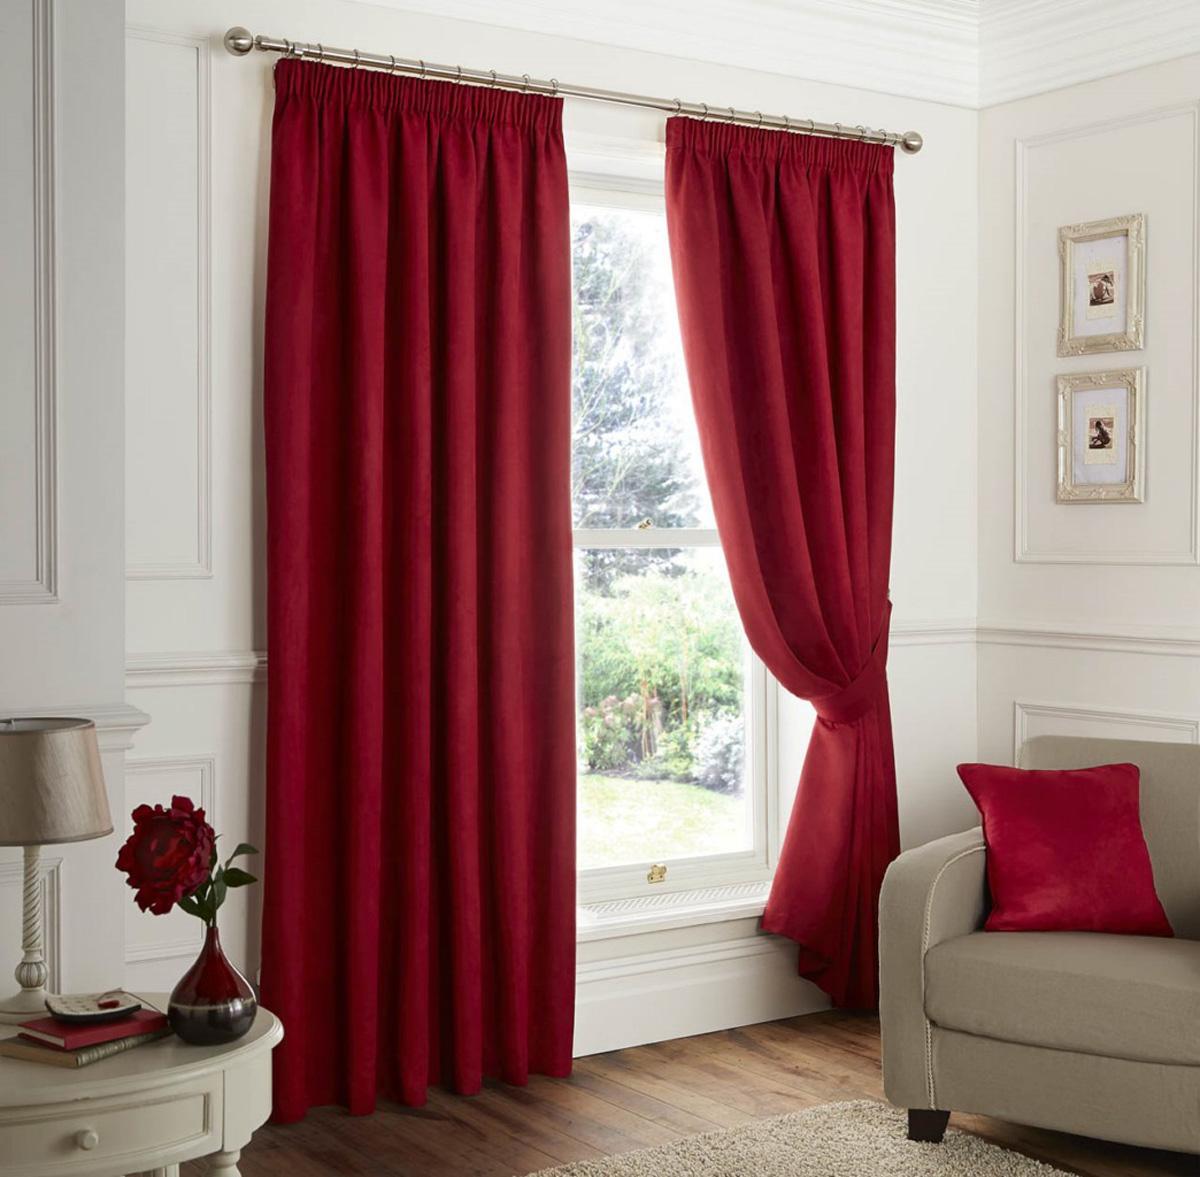 Faux Suede Ready Made Lined Curtains Part 58